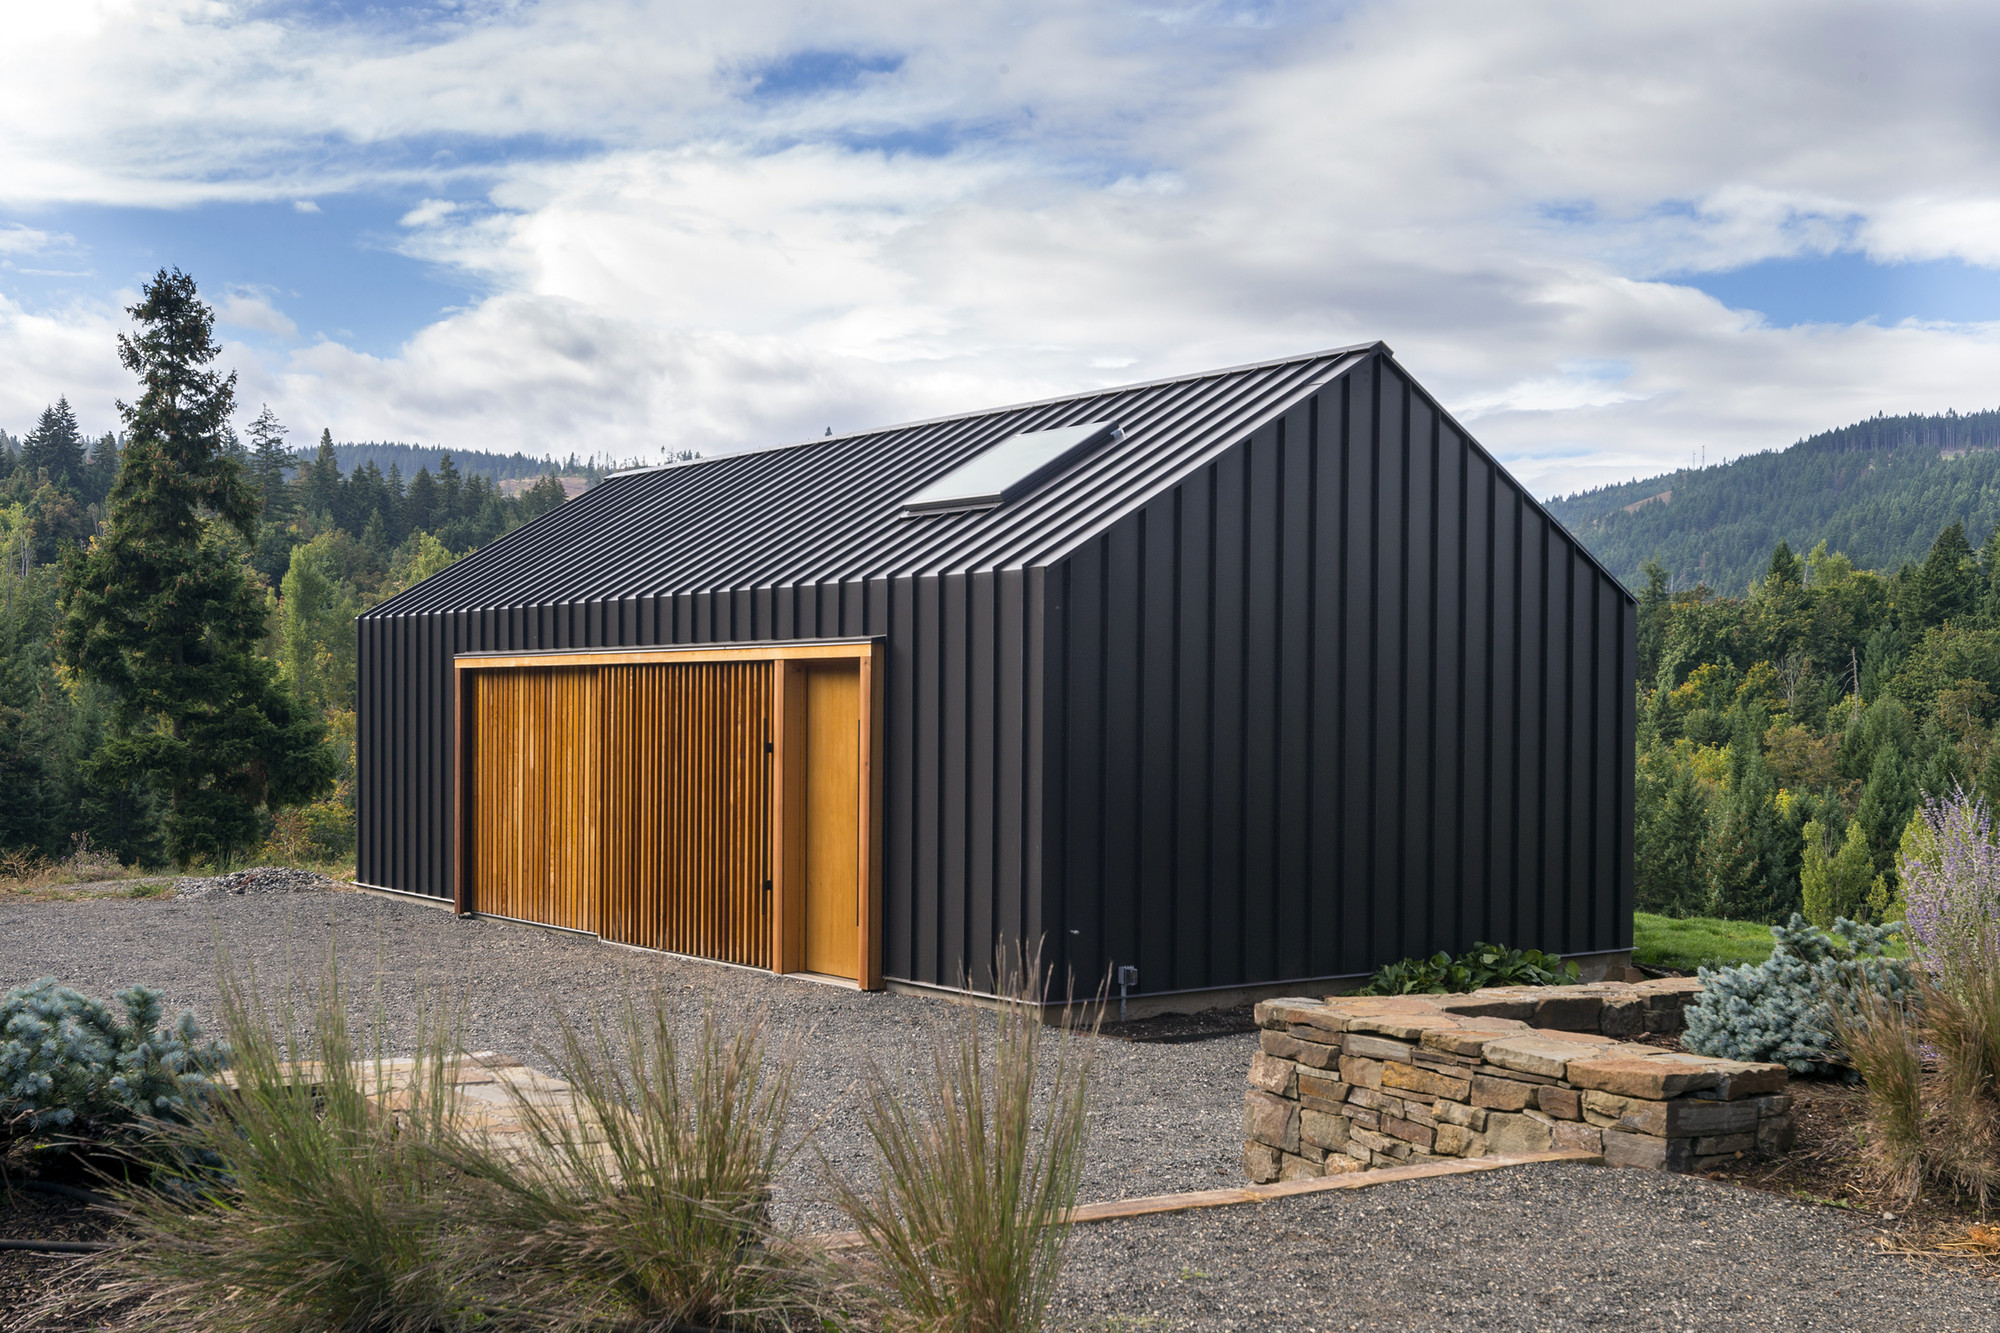 gallery of elk valley tractor shed fieldwork design shed style architecture shed style architecture what the